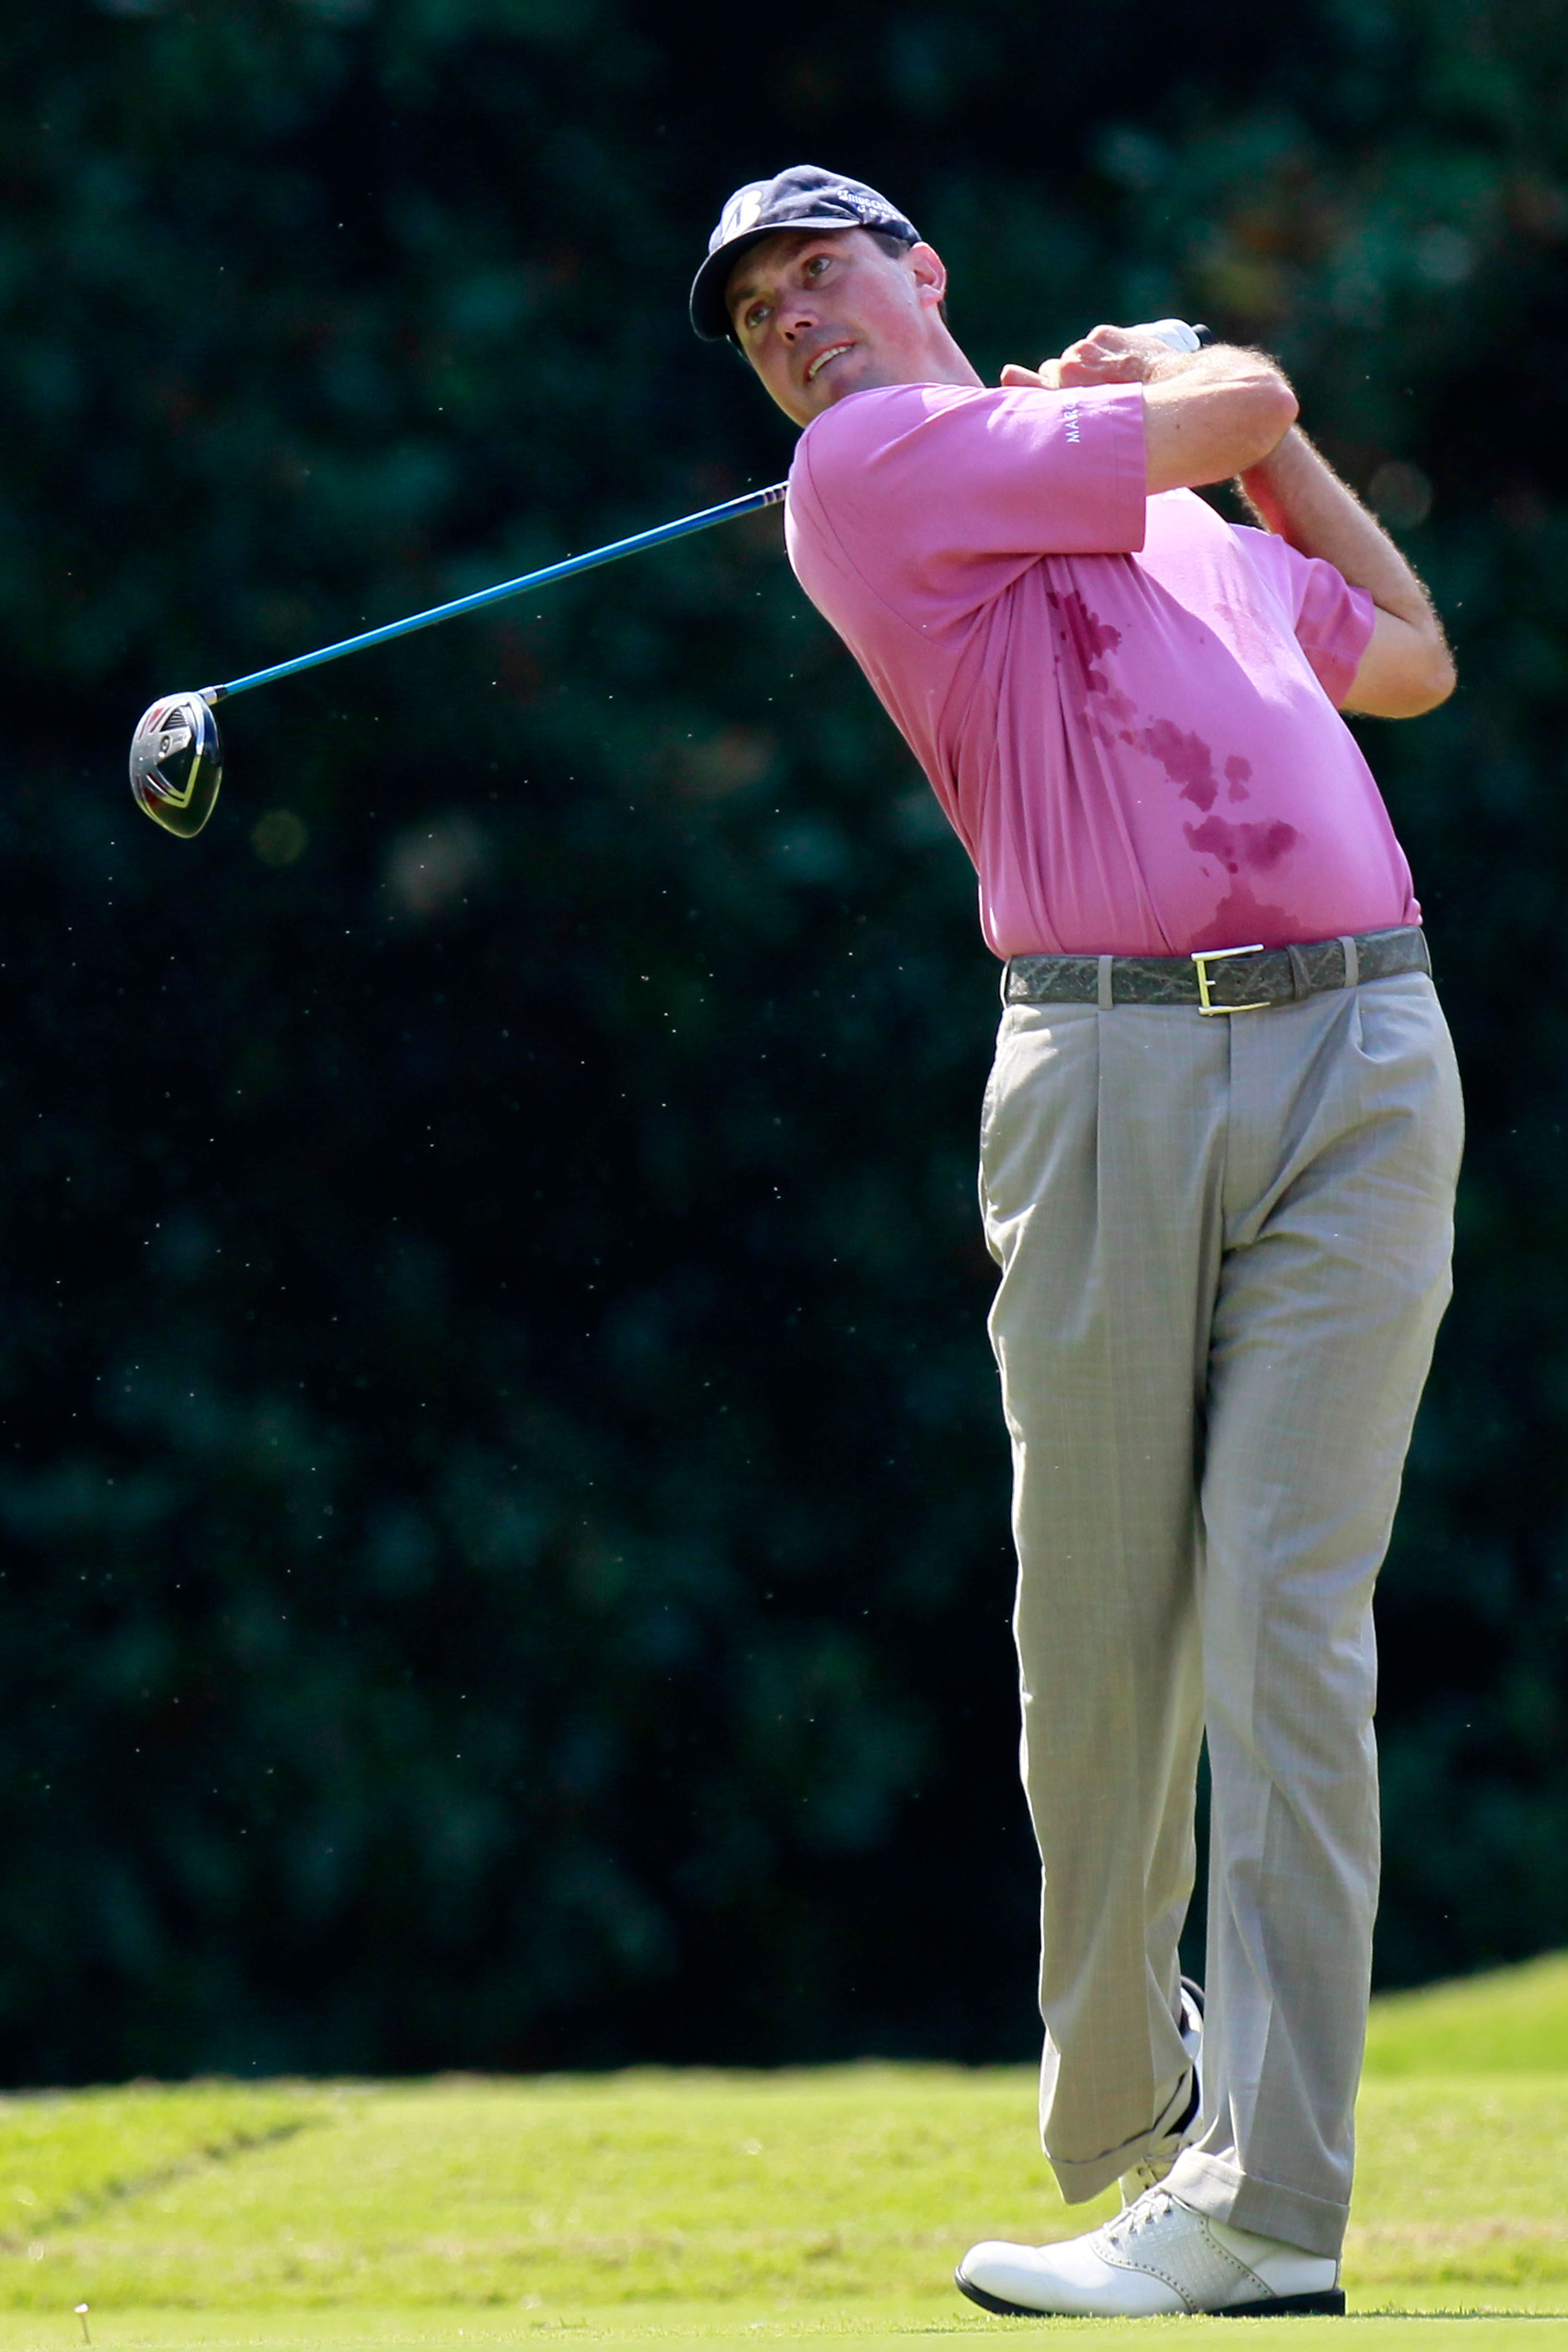 ATLANTA - SEPTEMBER 23:  Matt Kuchar hits a tee shot on the fifth hole during the first round of THE TOUR Championship presented by Coca-Cola at East Lake Golf Club on September 23, 2010 in Atlanta, Georgia.  (Photo by Kevin C. Cox/Getty Images)